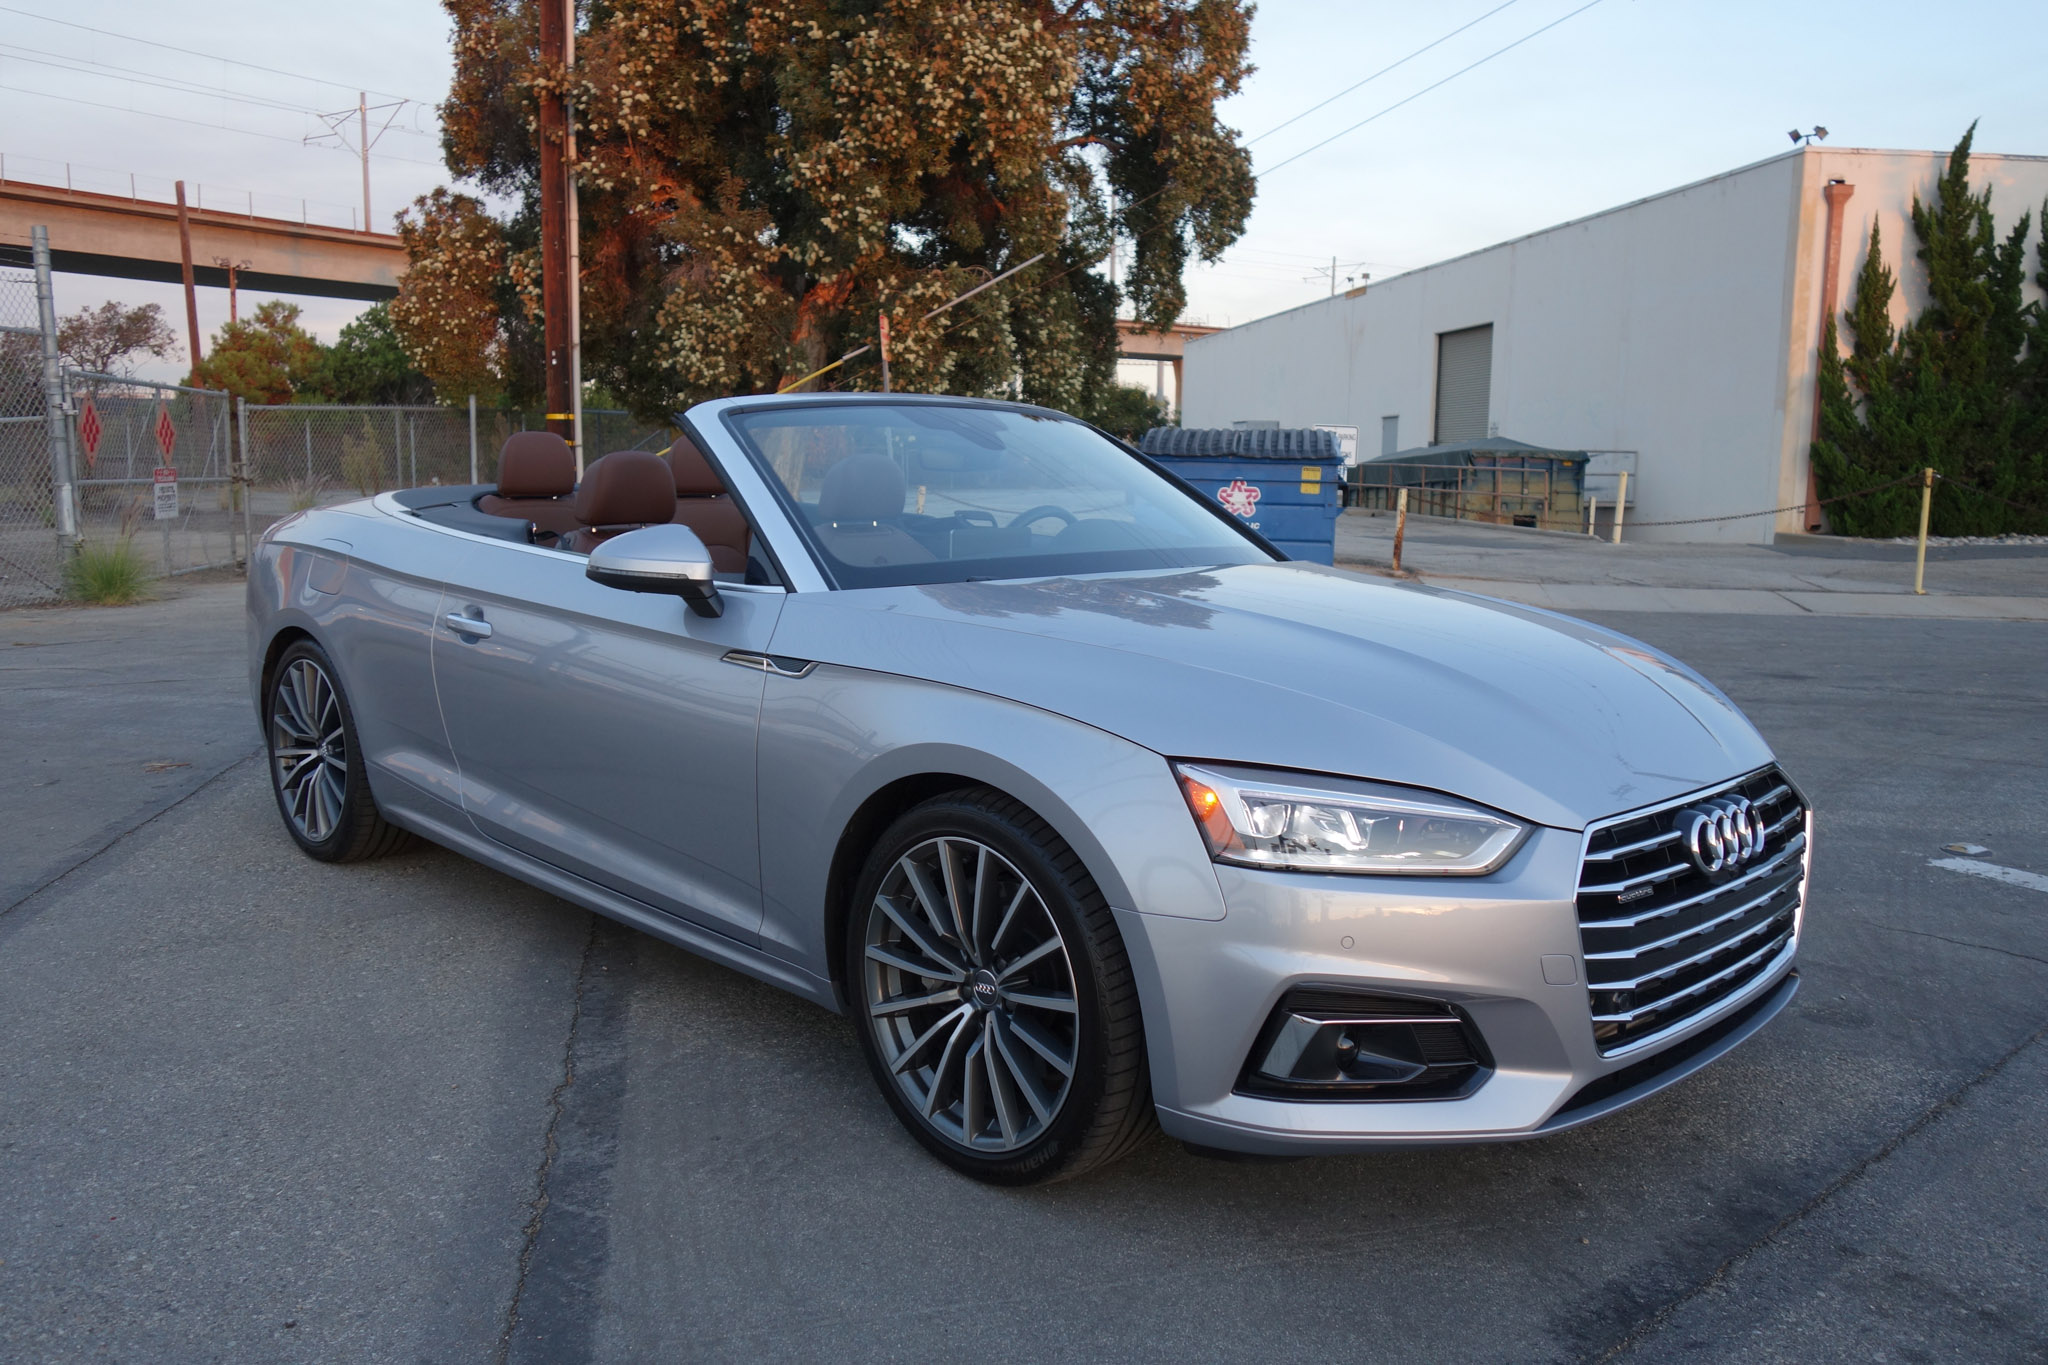 Three Things We About the 2018 Audi A5 Cabriolet 2.0T Quattro ...